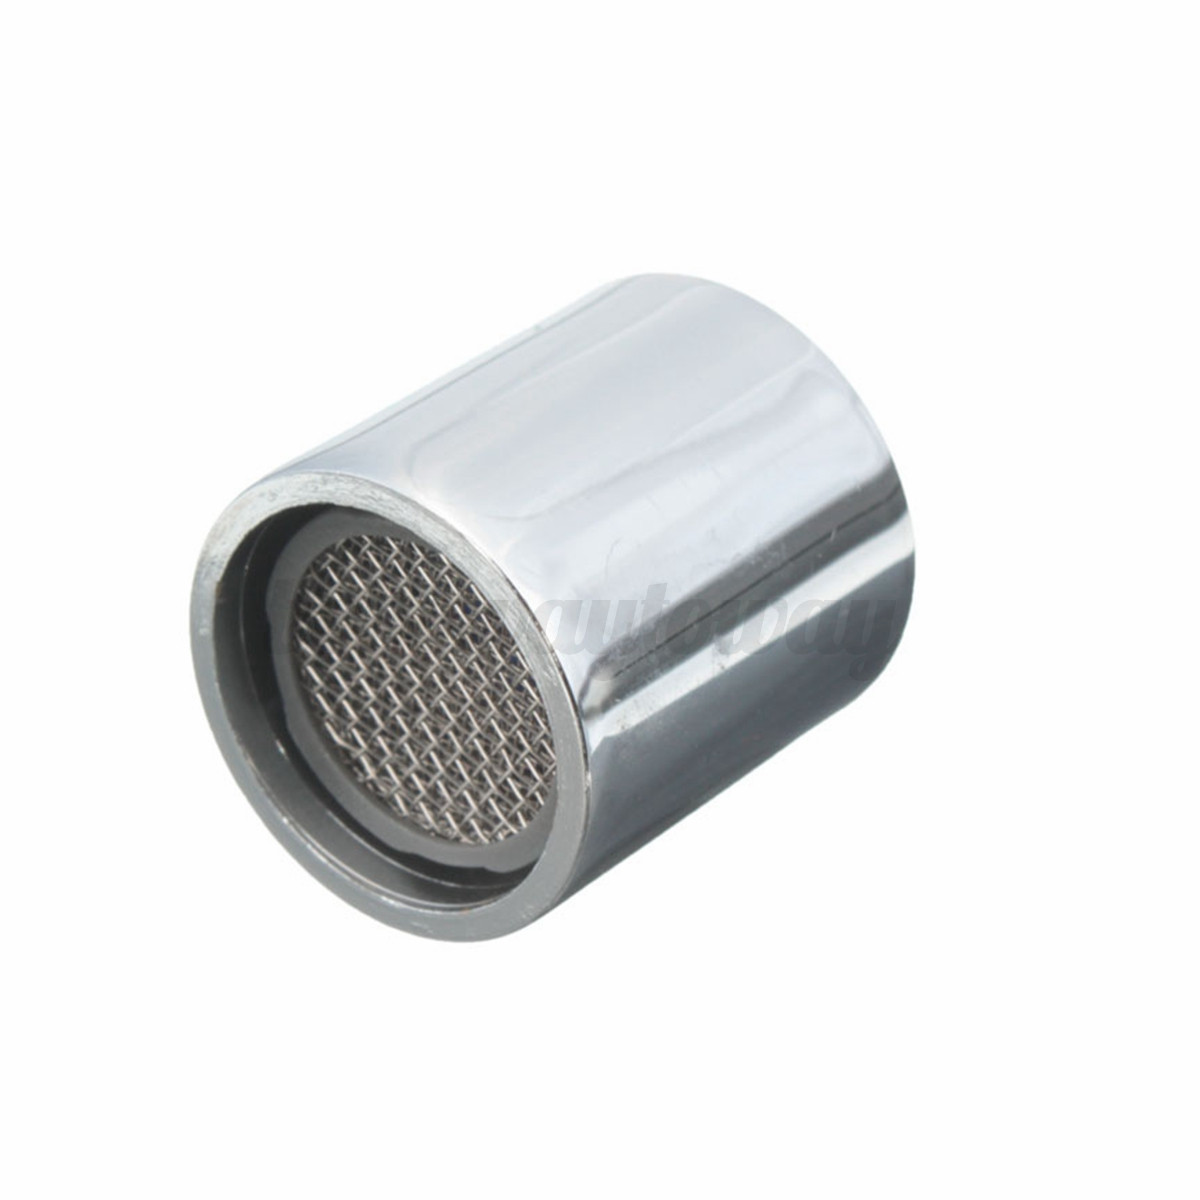 Chromed 16mm Swivel Water Tap Aerator Nozzle Faucet Spout Filter Adapter Home Ebay